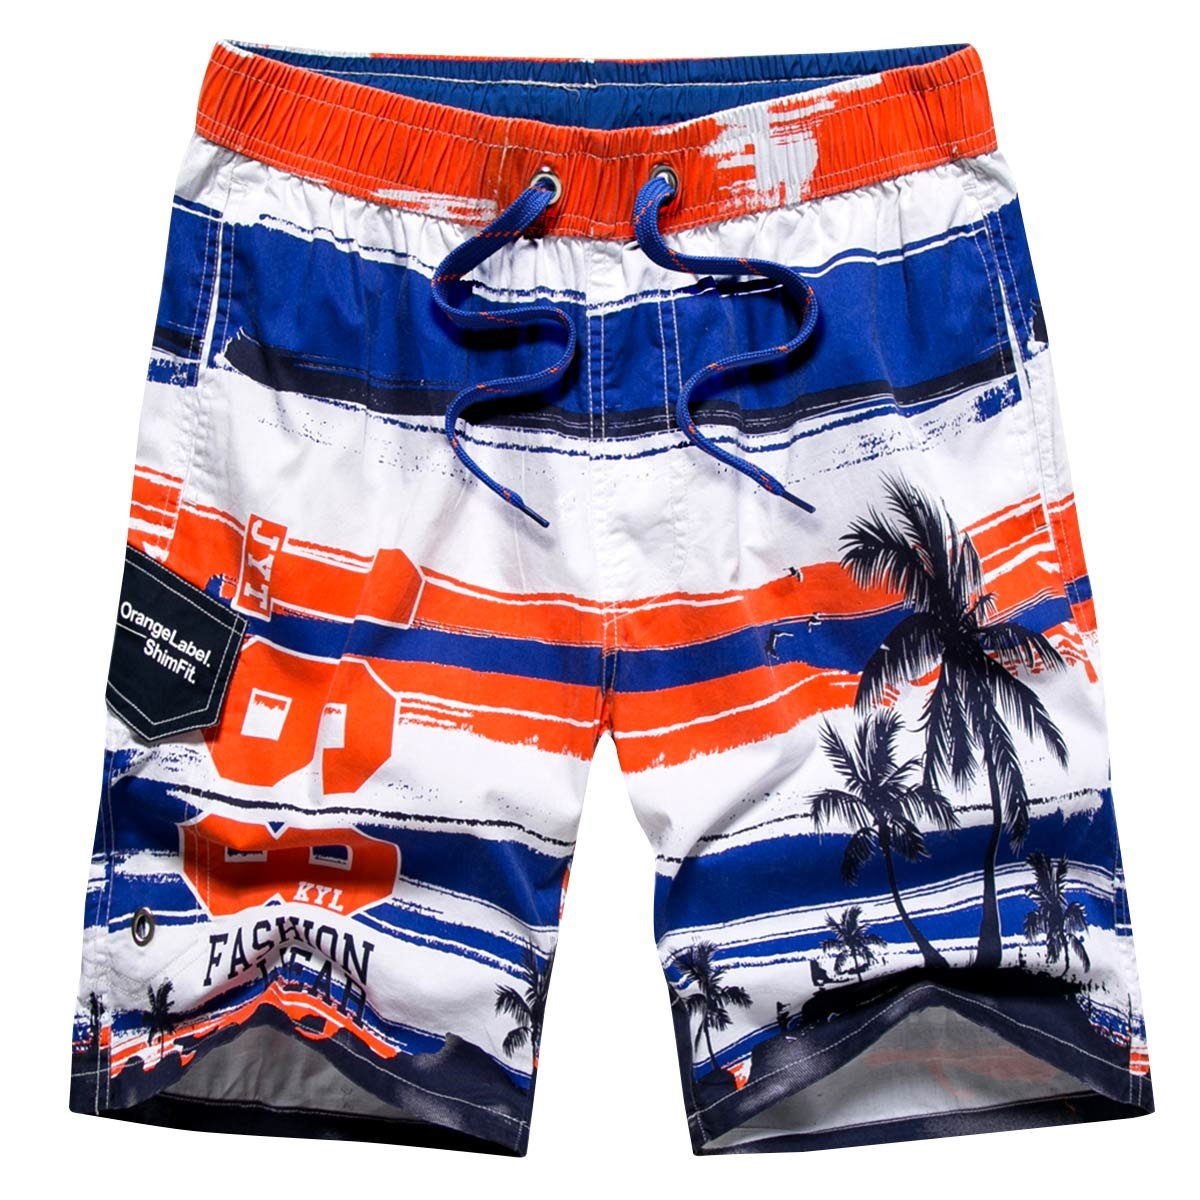 Tailor Pal Love Men's Cotton Surf Trunks Fashion Colorful Printing Sportwear Quick-Drying Breathable Beach Bathing Trunks Swimwear, Orange Size S